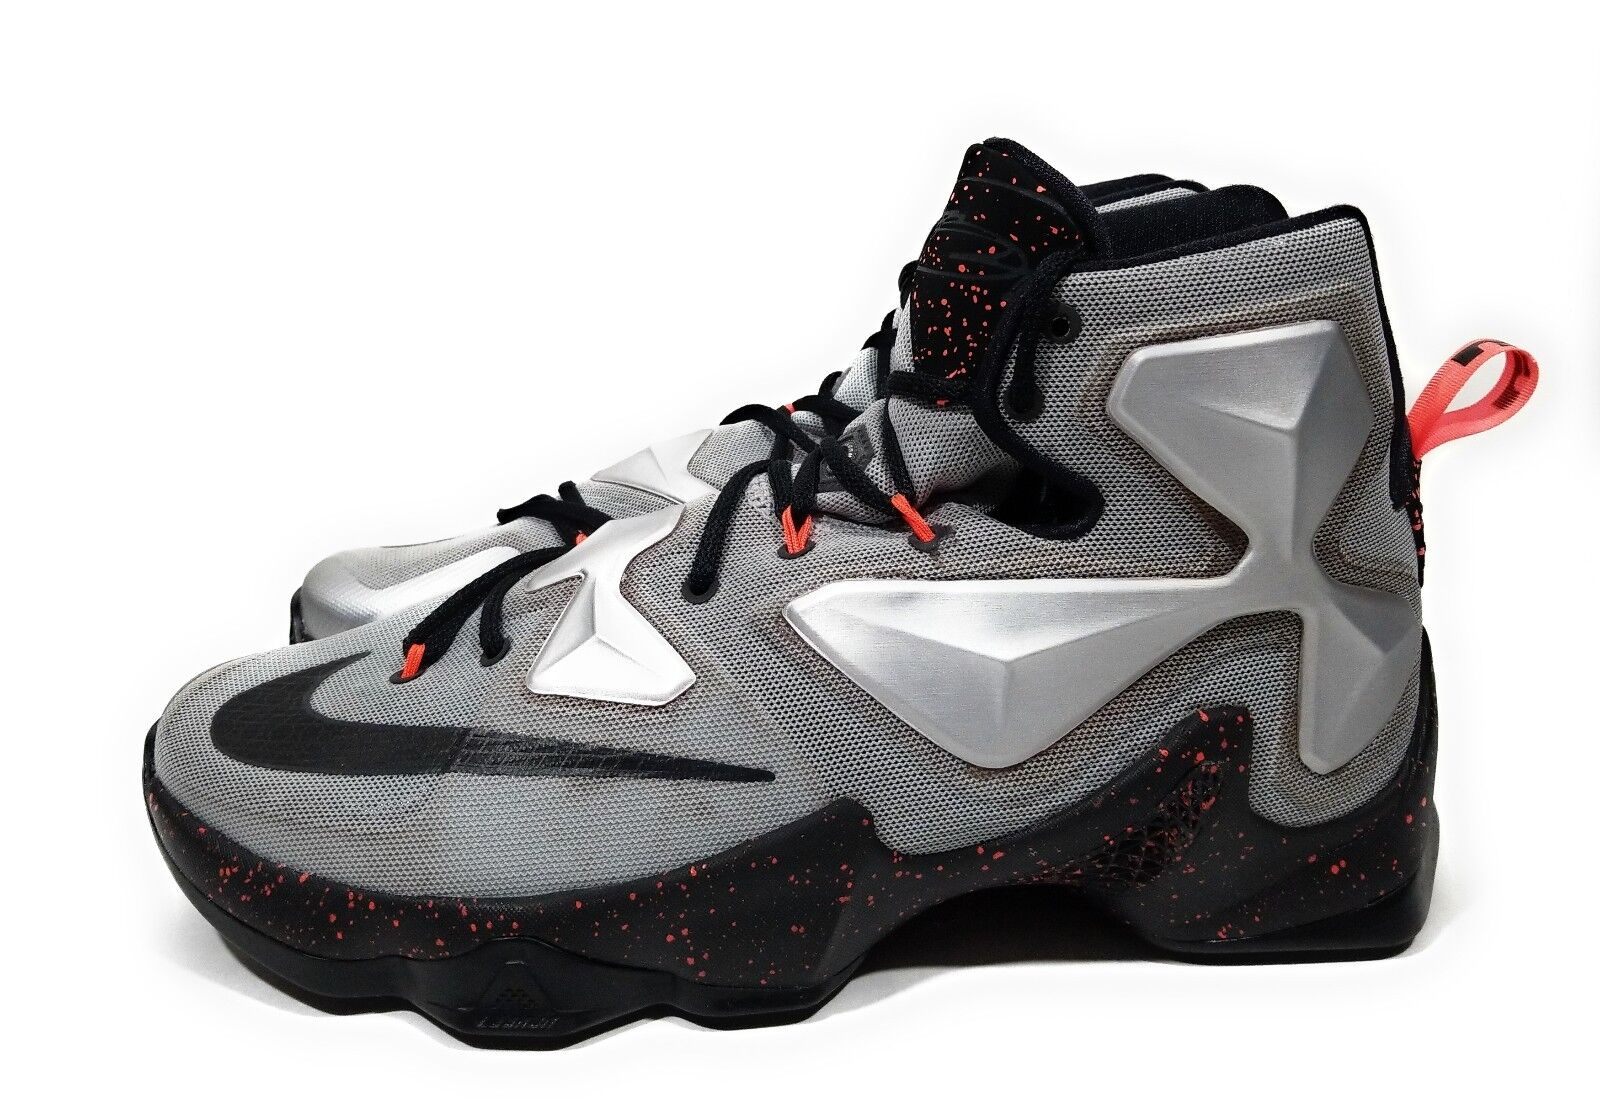 online store 0c940 ad93a Nike Lebron Lebron Lebron XIII 13 Rubber City Mens Basketball Shoes  Metallic Silver Size 12 372489